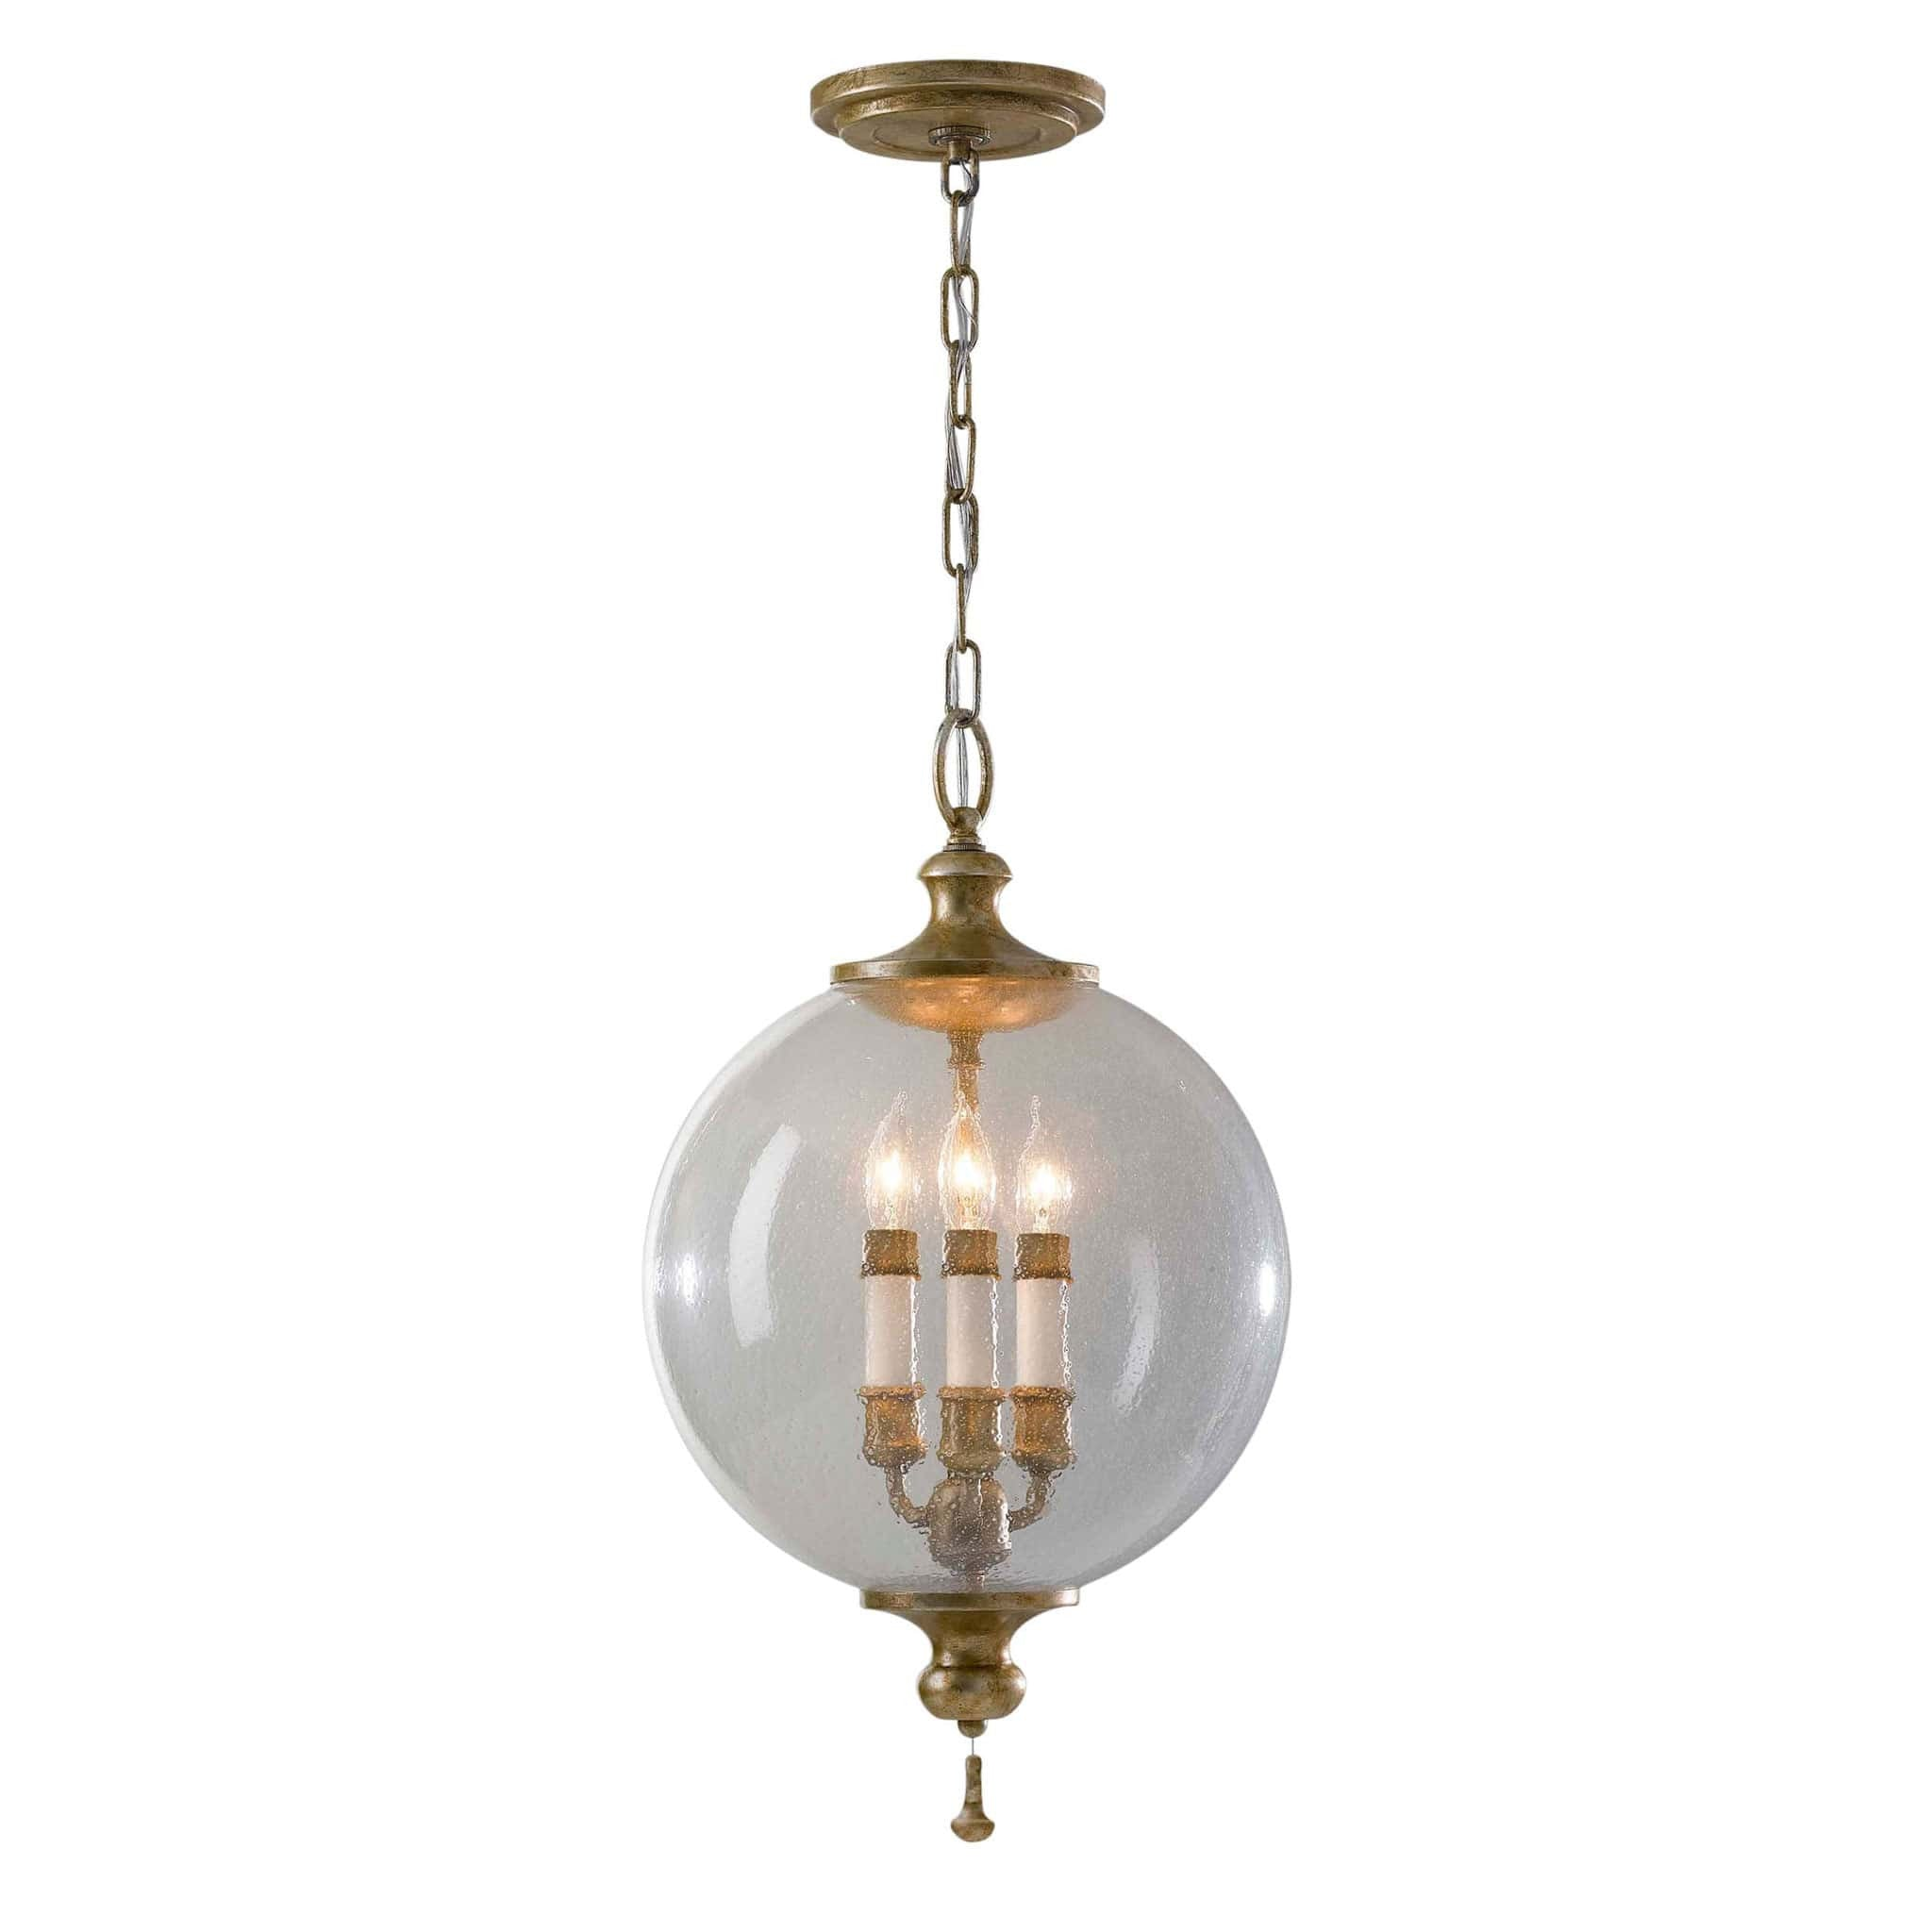 large glass cylindrical lamp hanging bubbled pendant